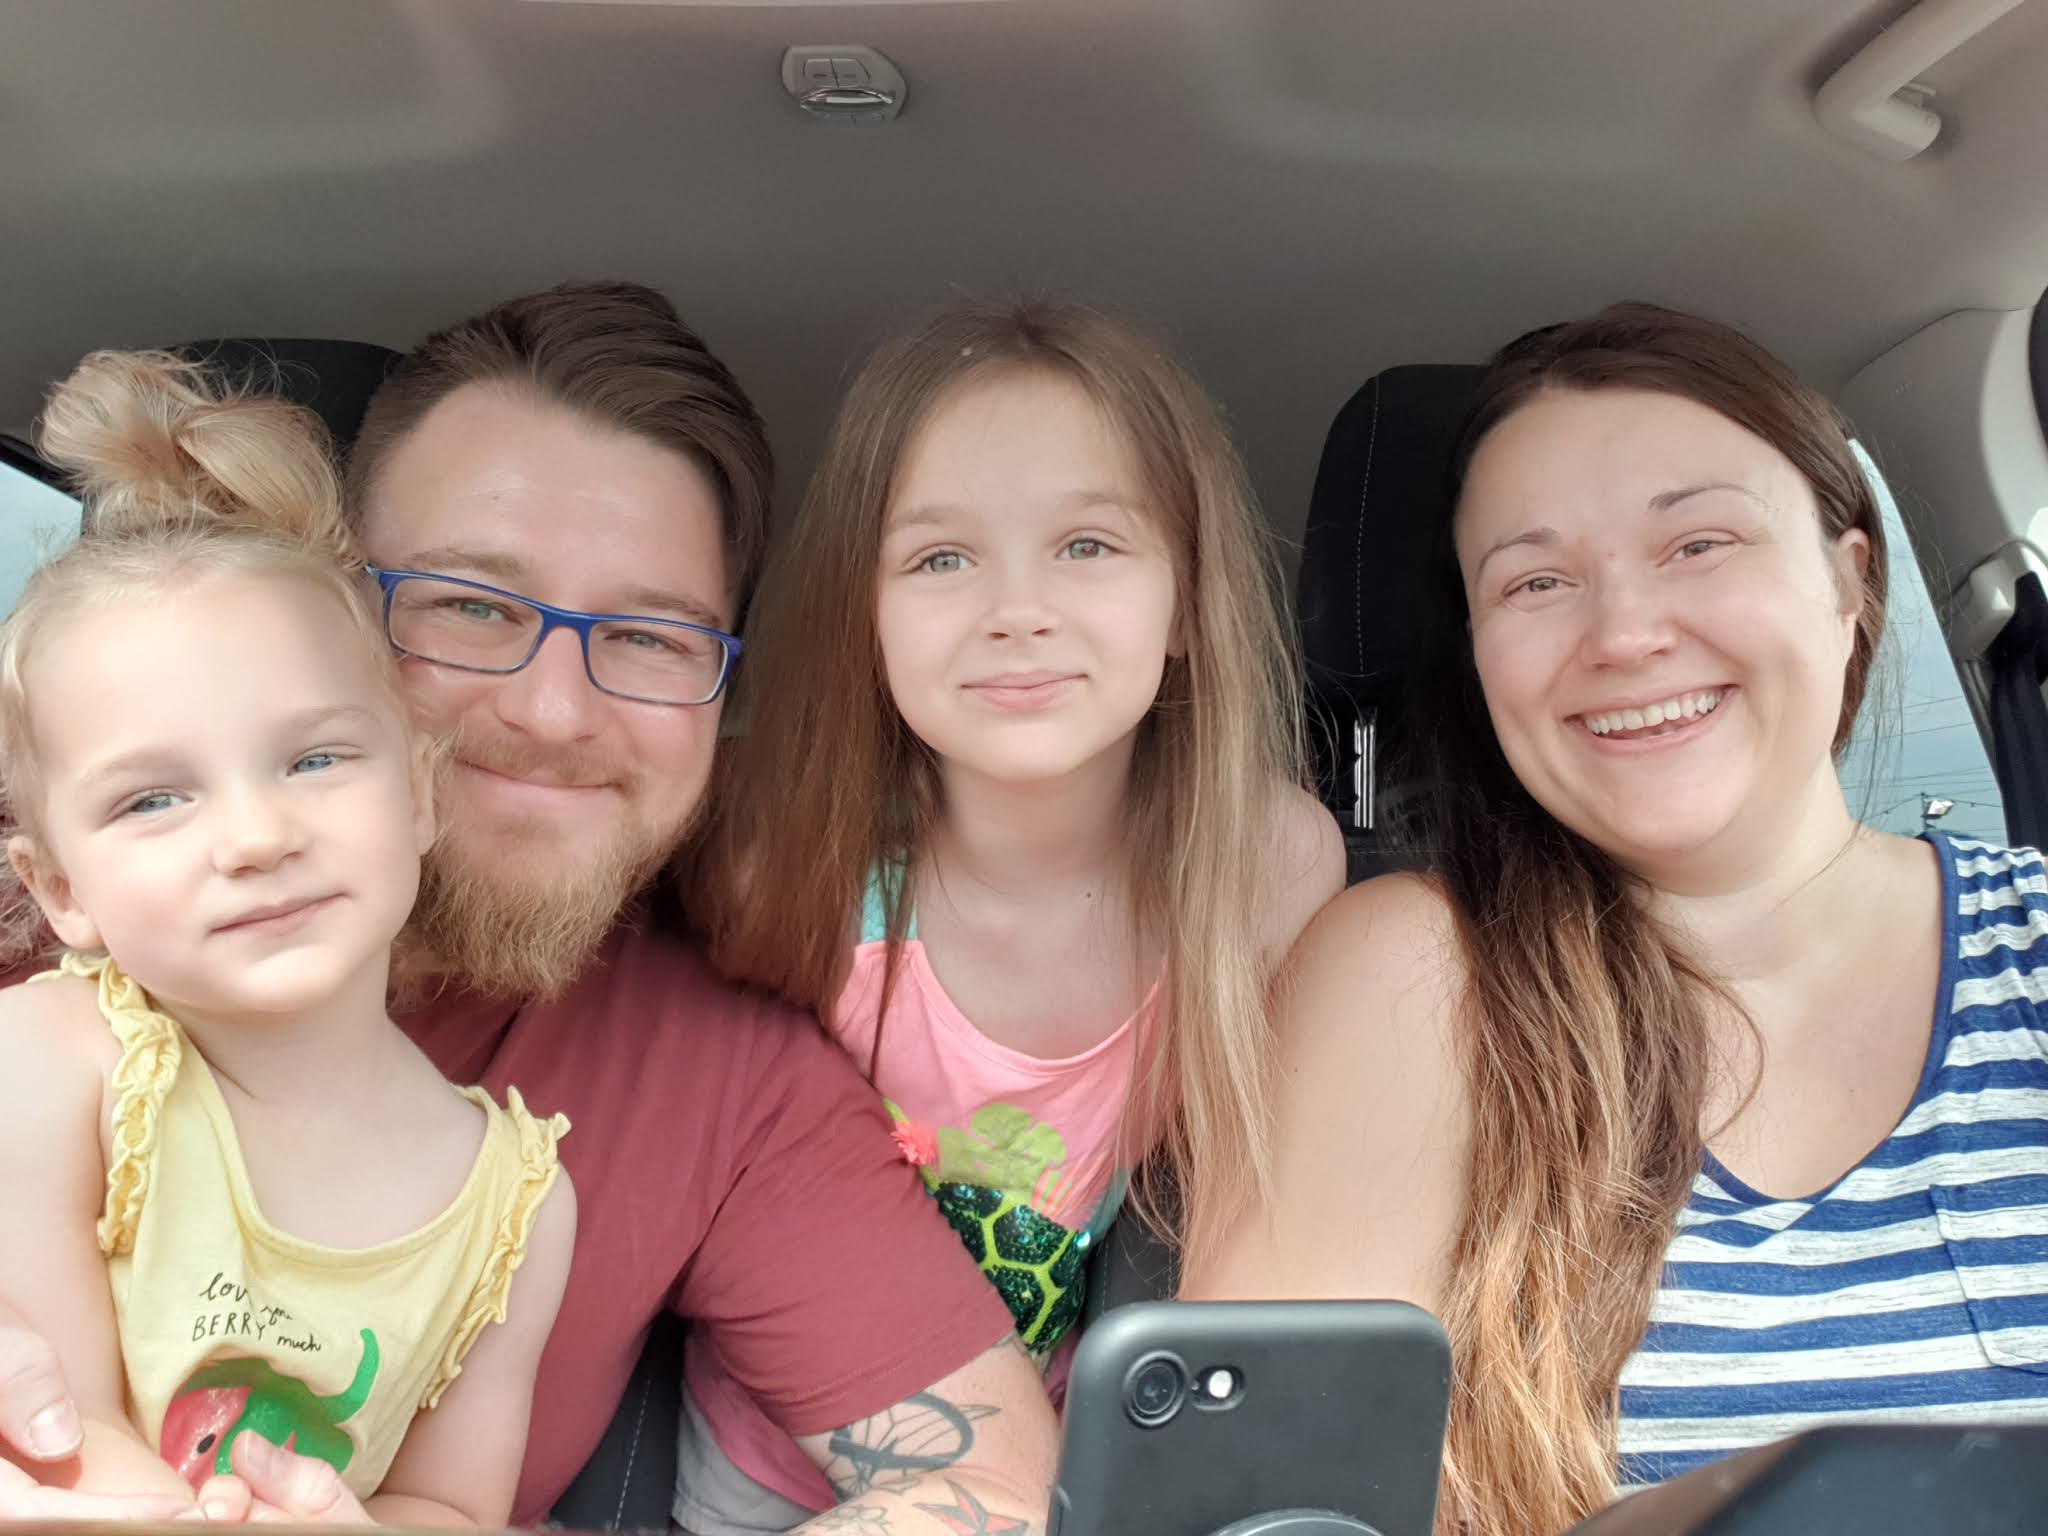 family selfie in the car